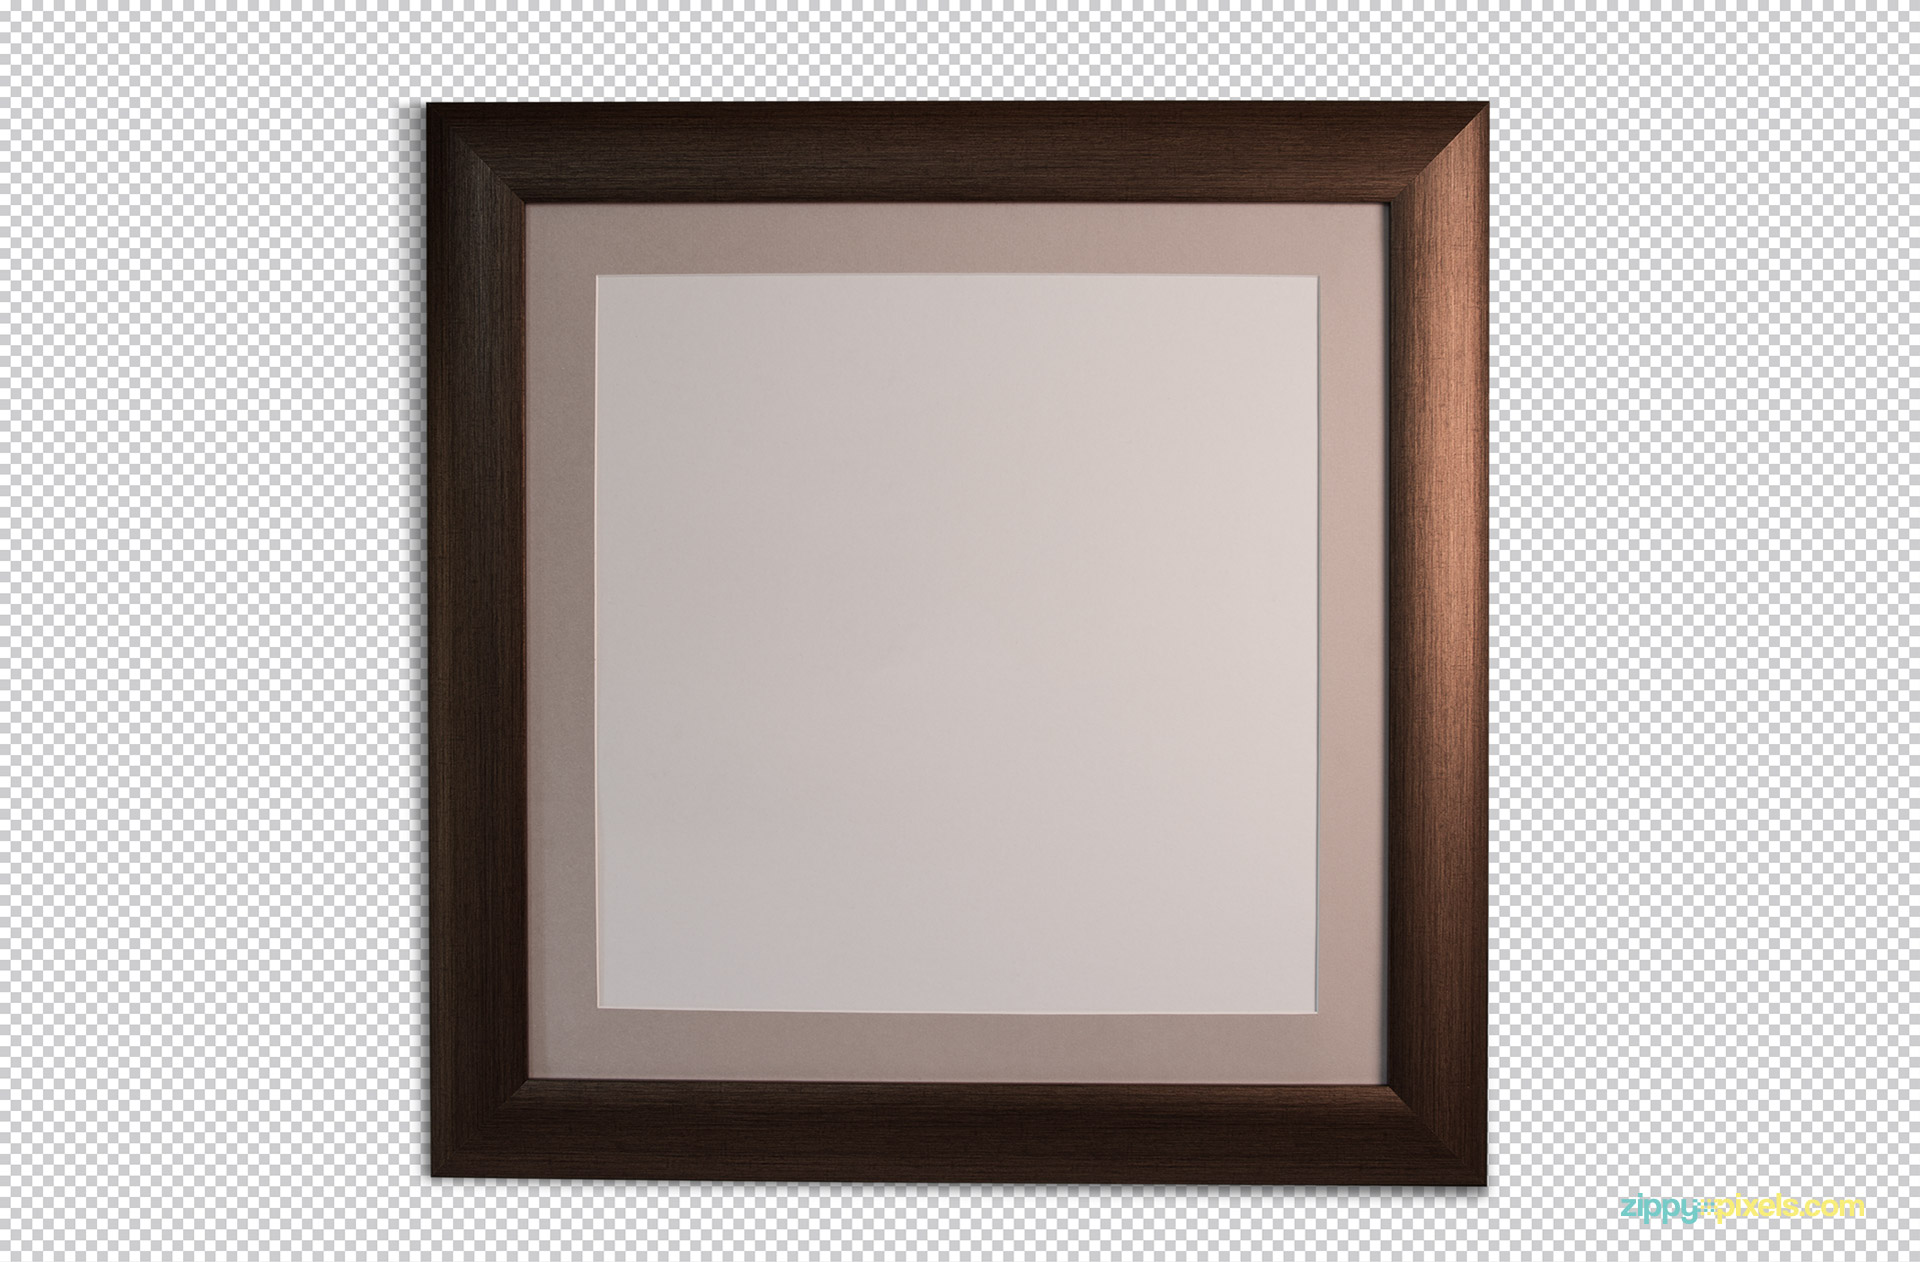 Free frame mockup with plain white background and surface.